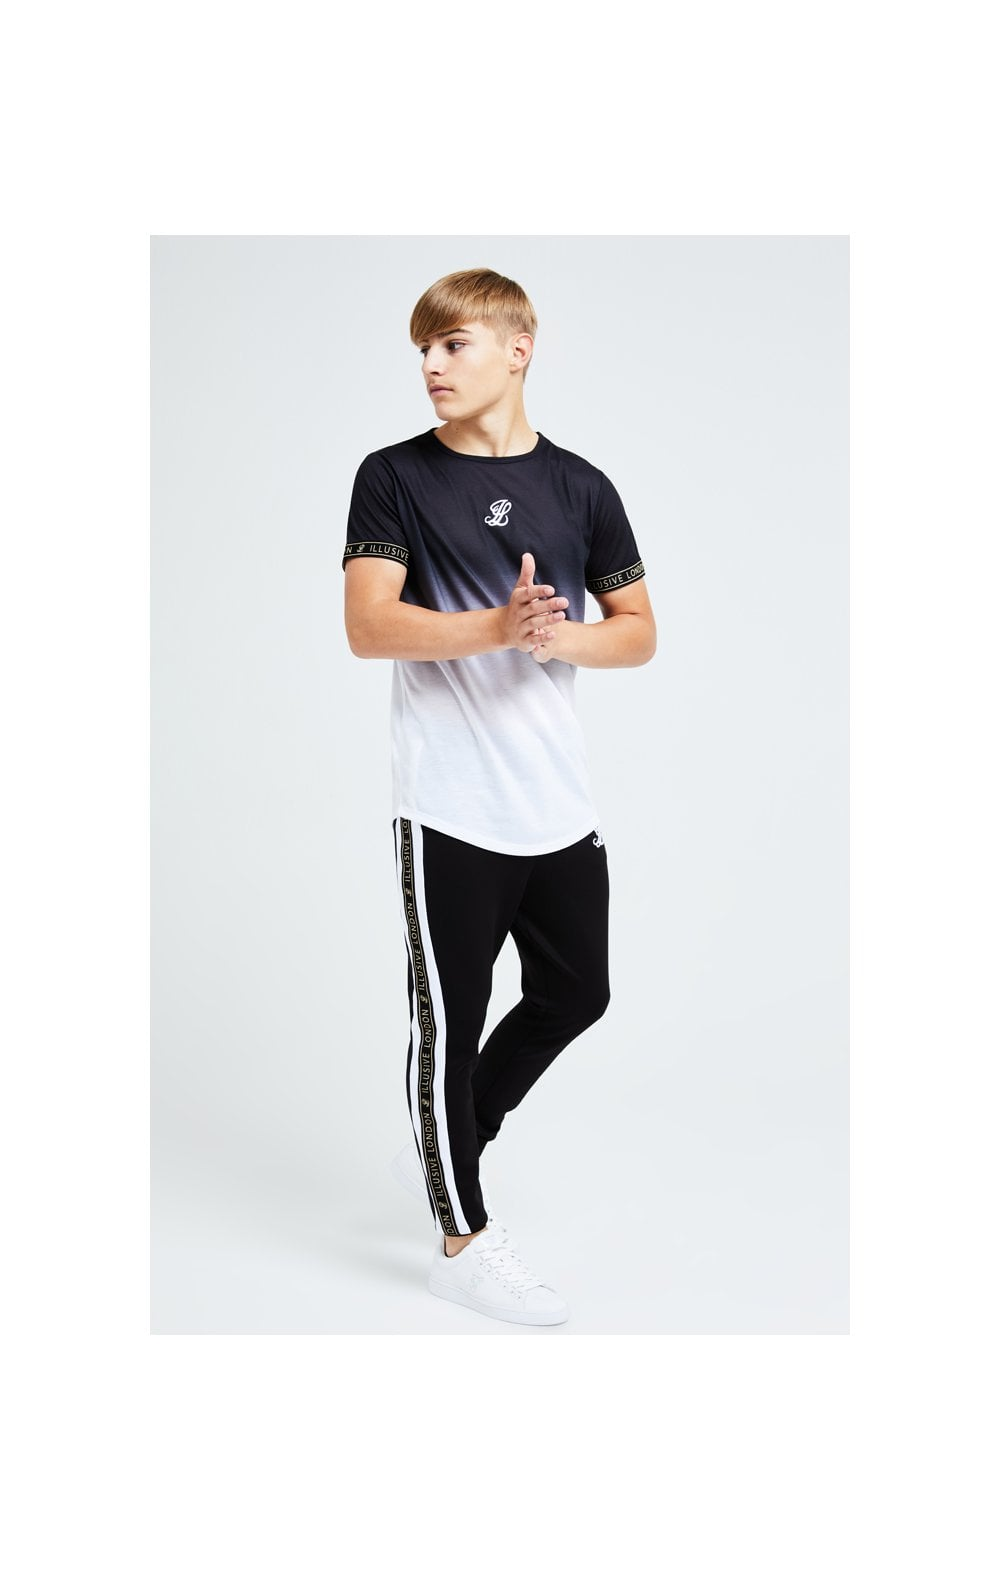 Illusive London Diverge Fade Tech Tee - Black Gold & White (3)